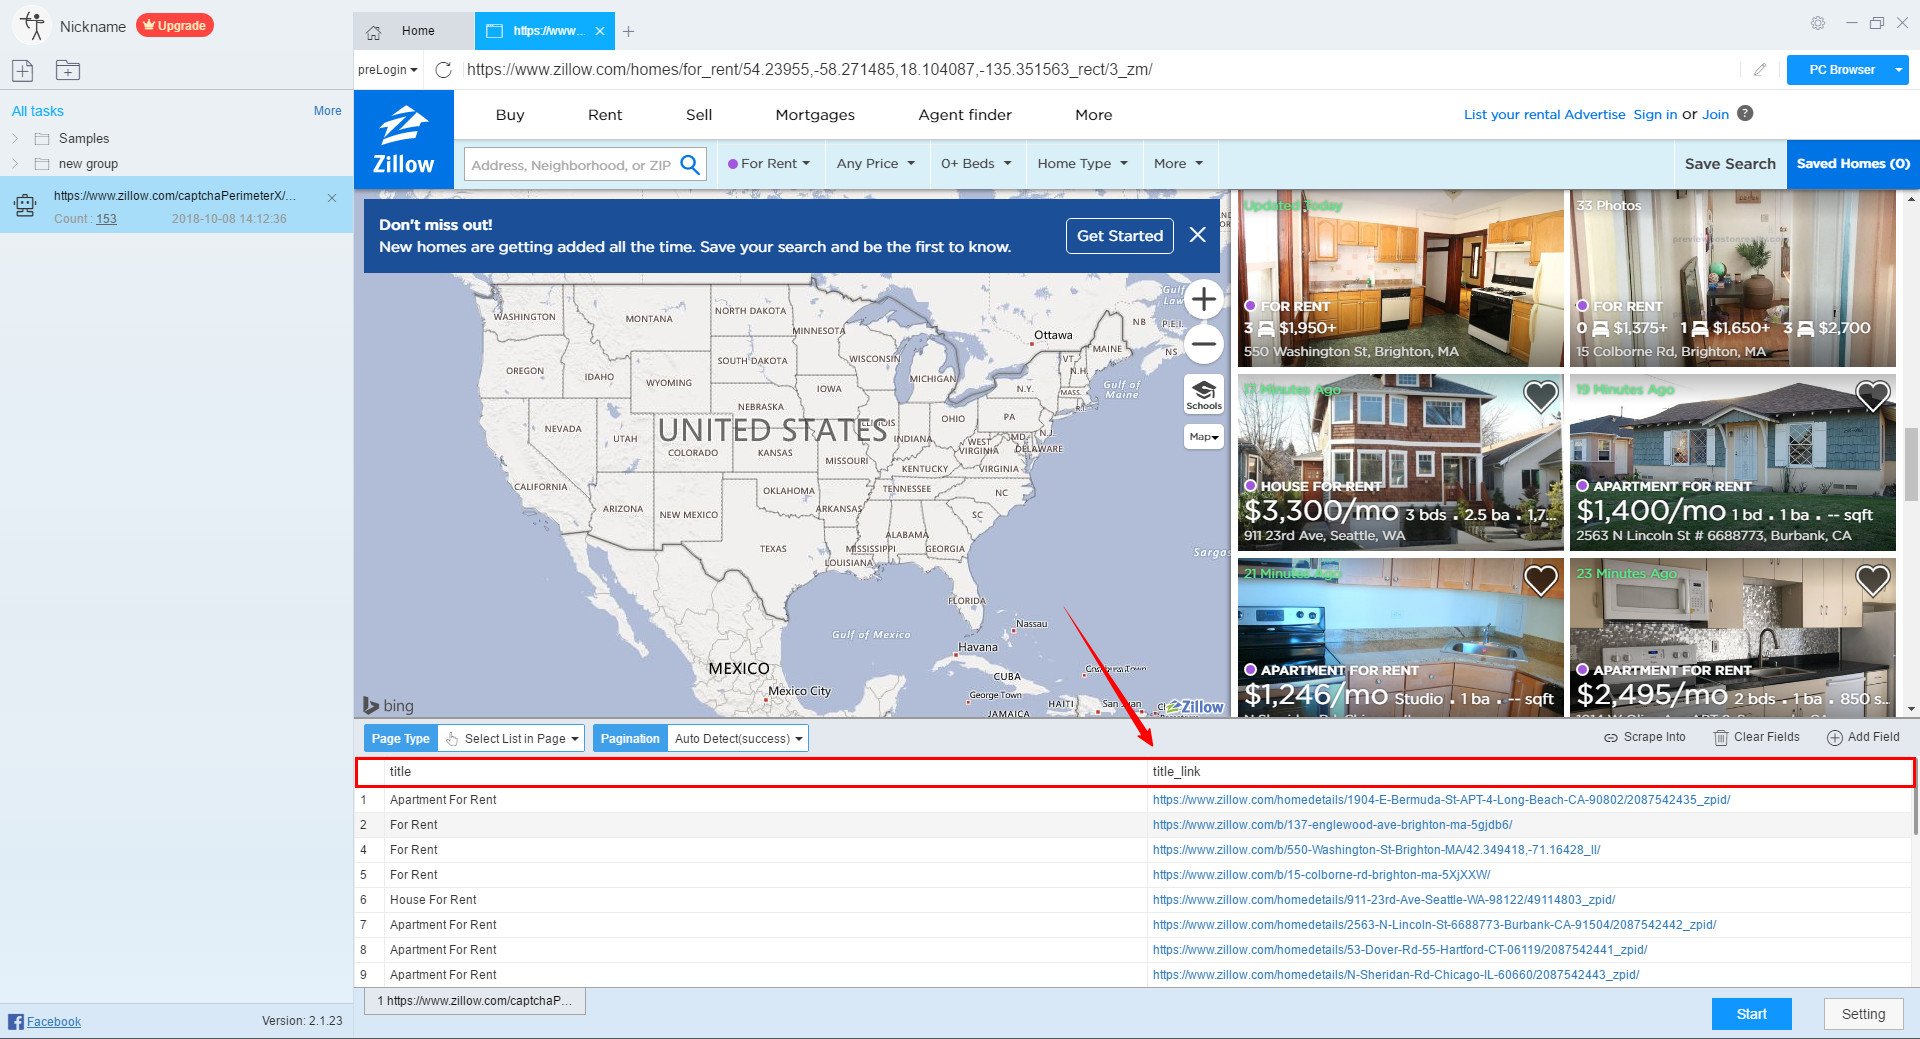 How to Scrape Rental Listings from Zillow - Zillow Scraper